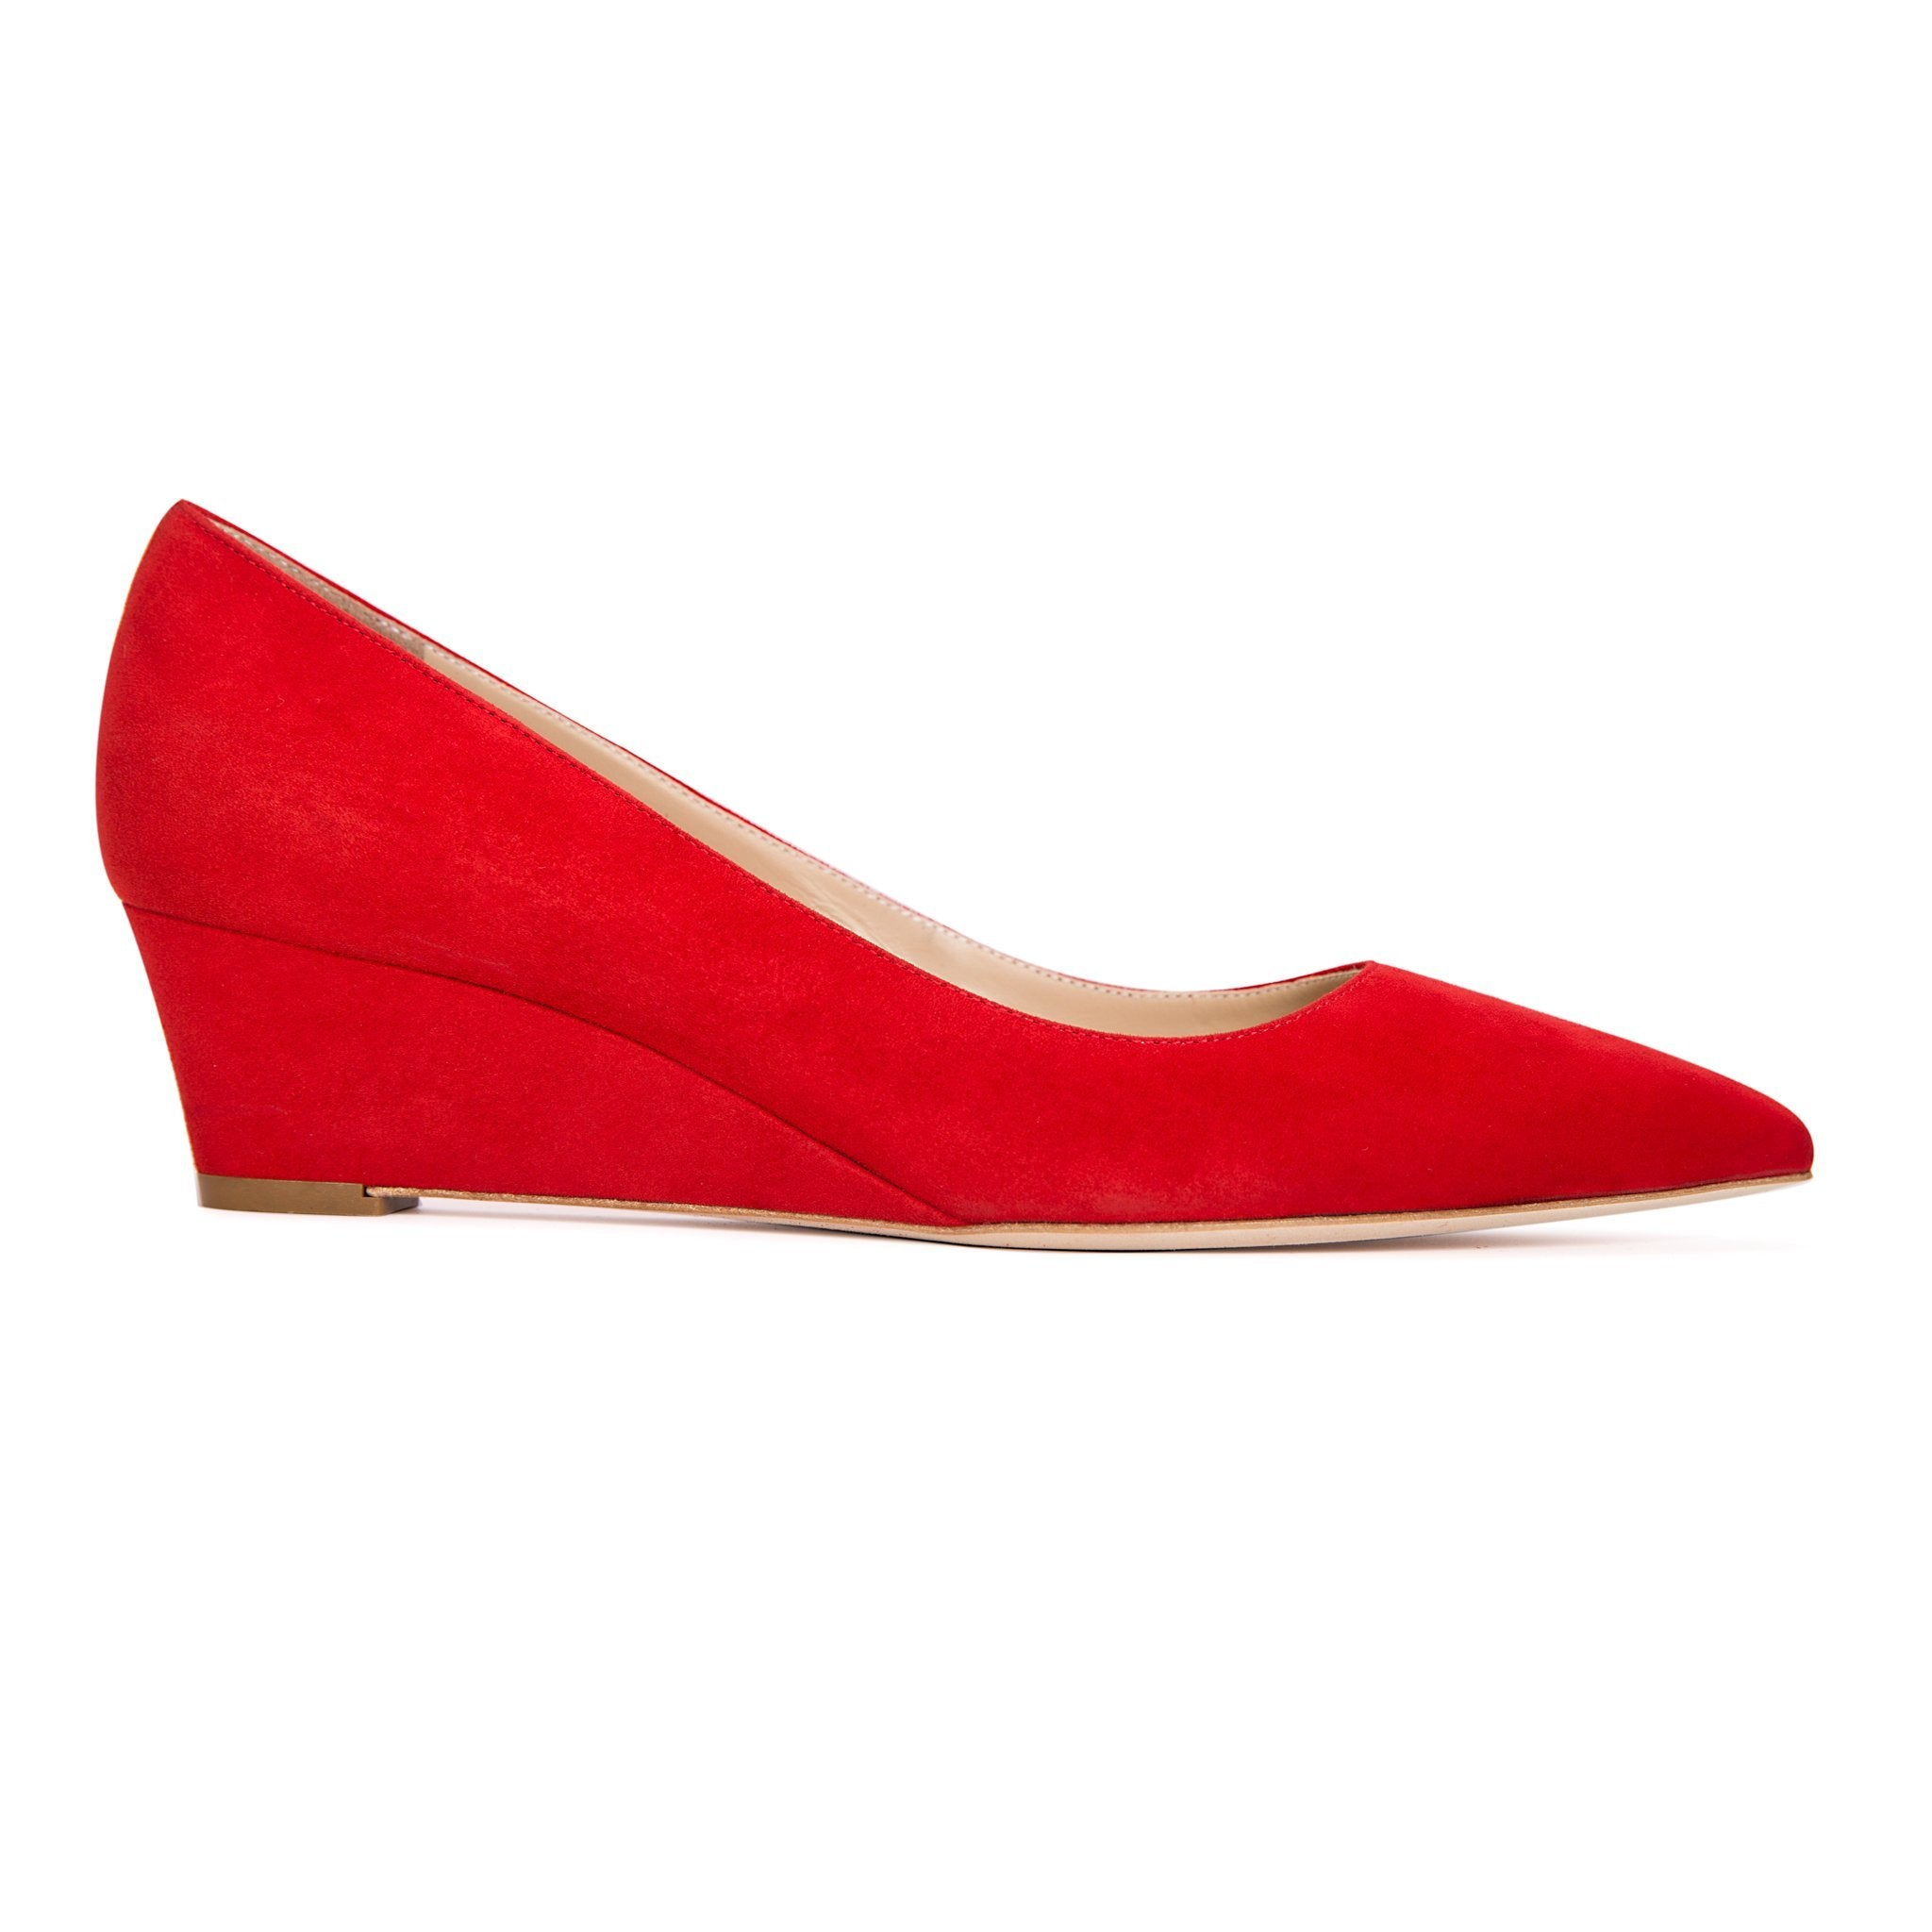 TRENTO - Velukid Rosso, VIAJIYU - Women's Hand Made Sustainable Luxury Shoes. Made in Italy. Made to Order.